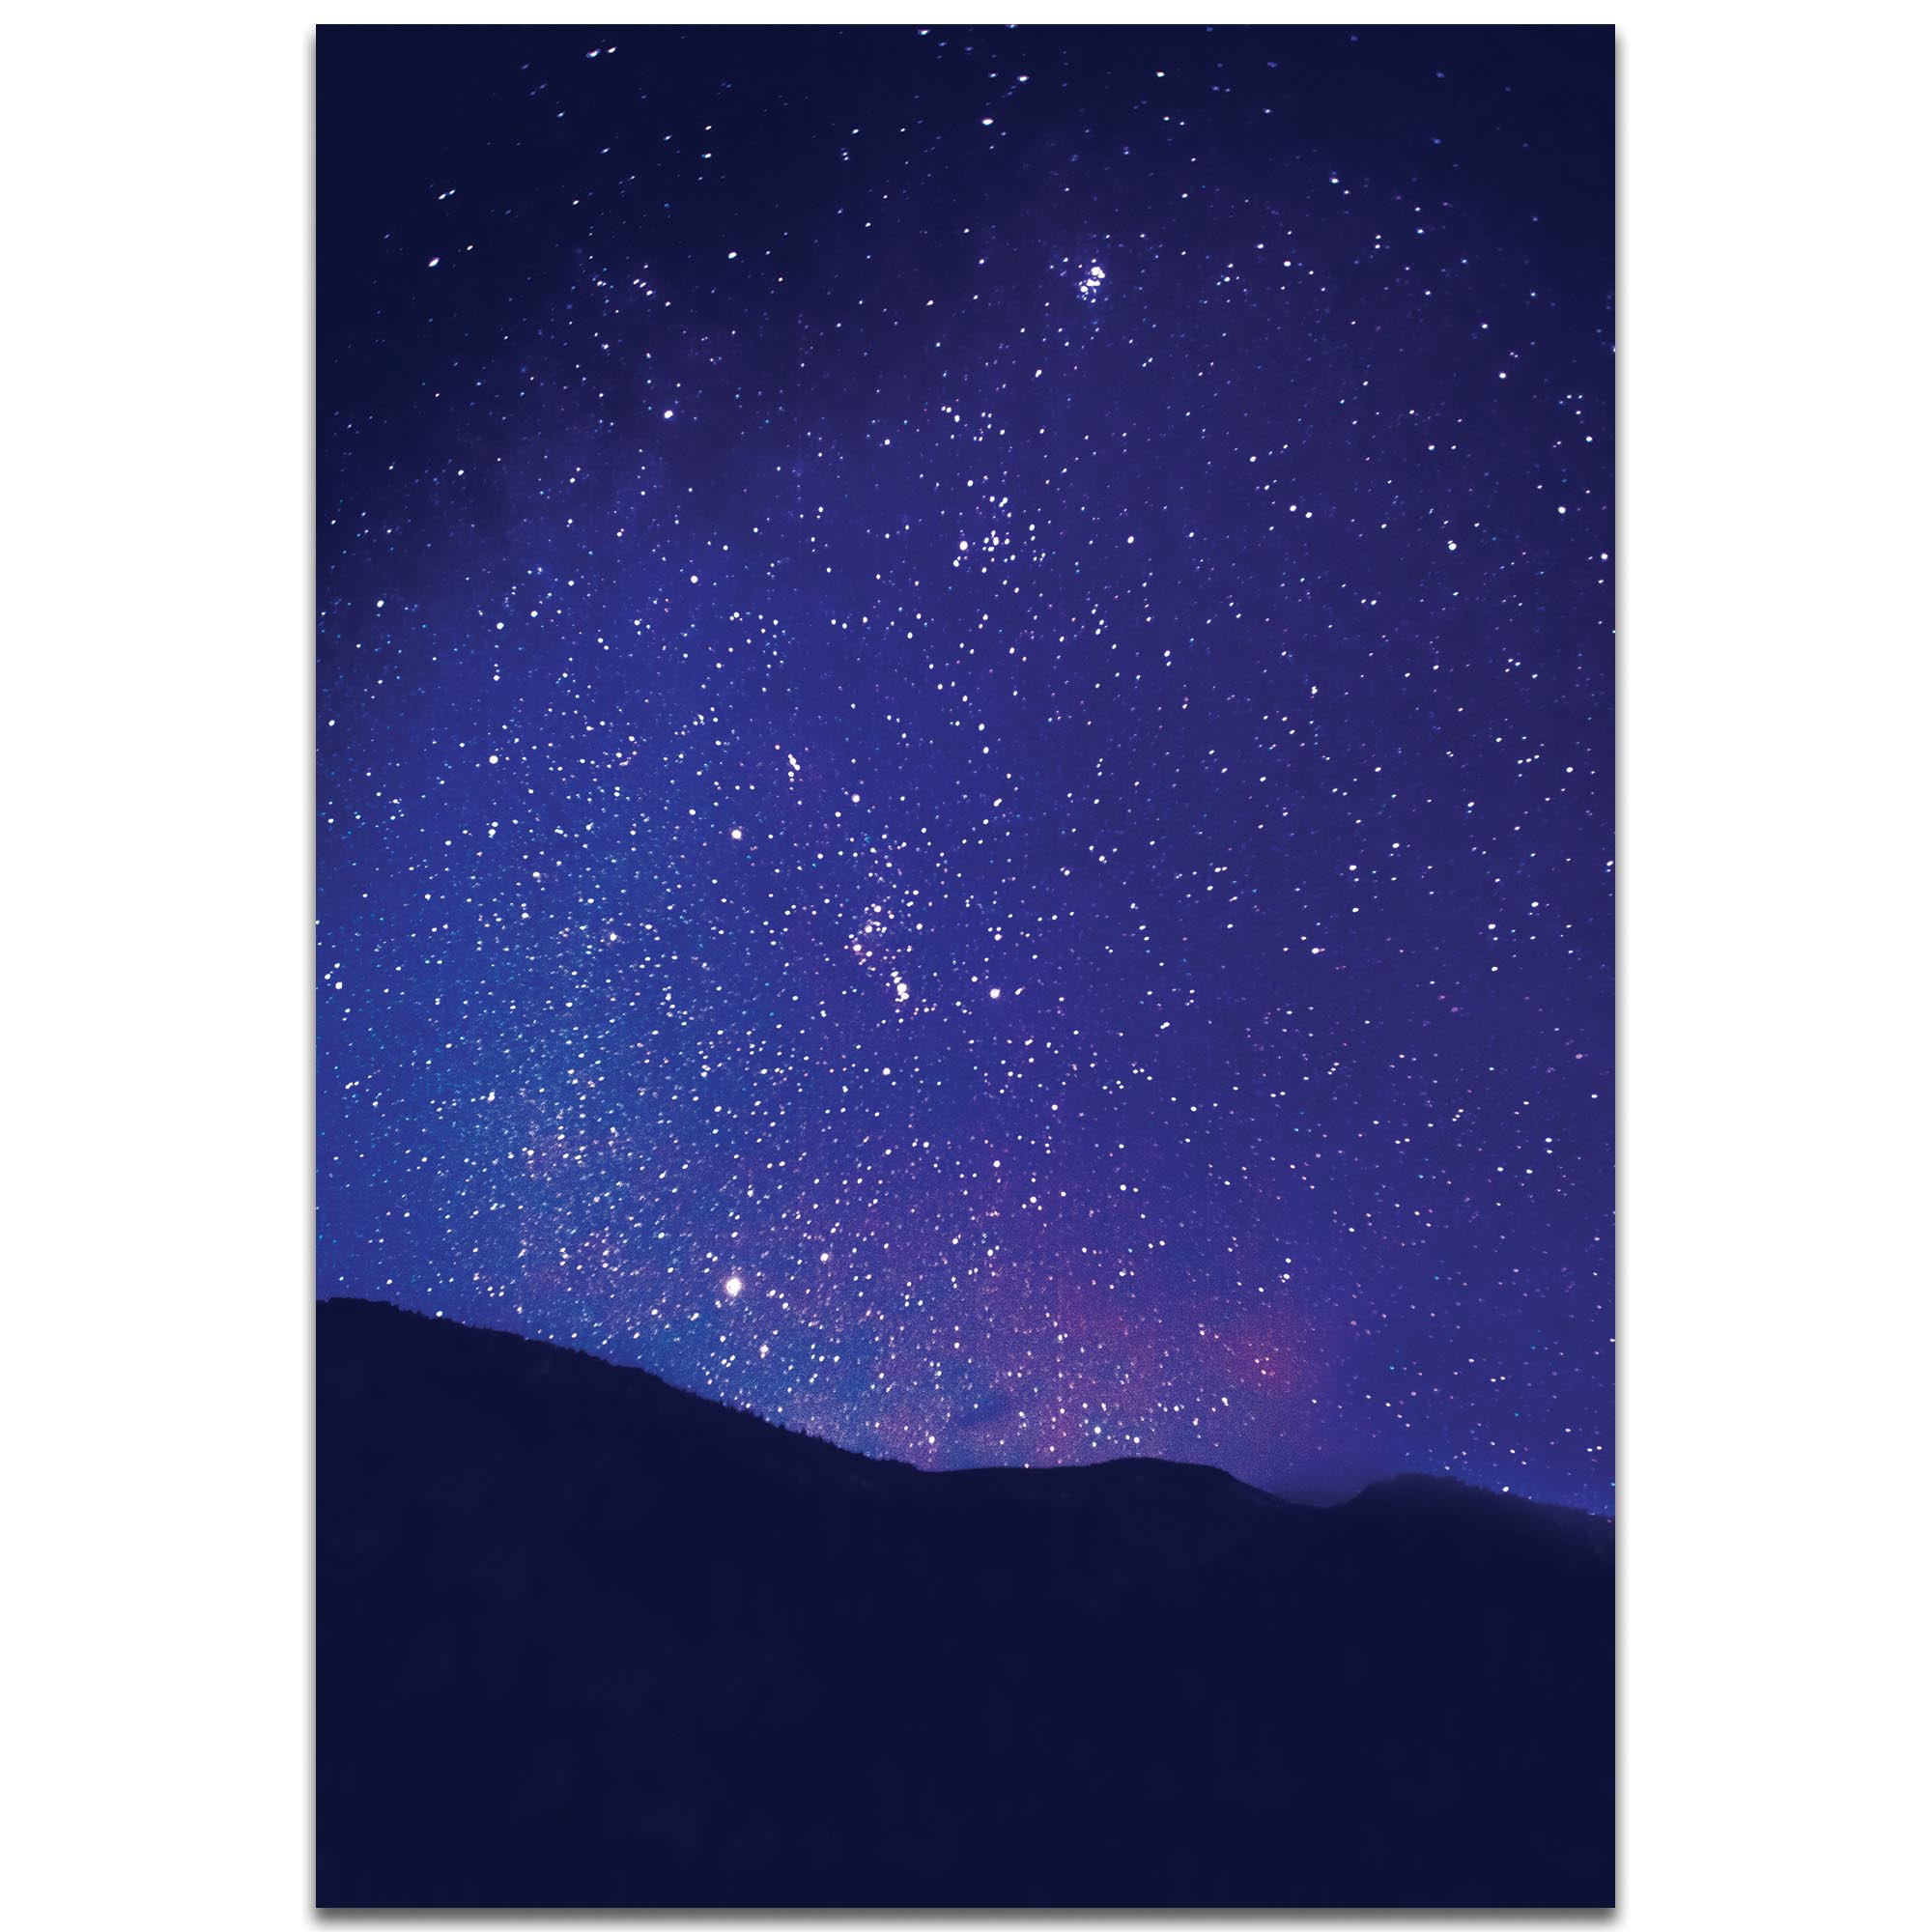 Nature Photography 'Satin Sky' - Night Sky Art on Metal or Plexiglass